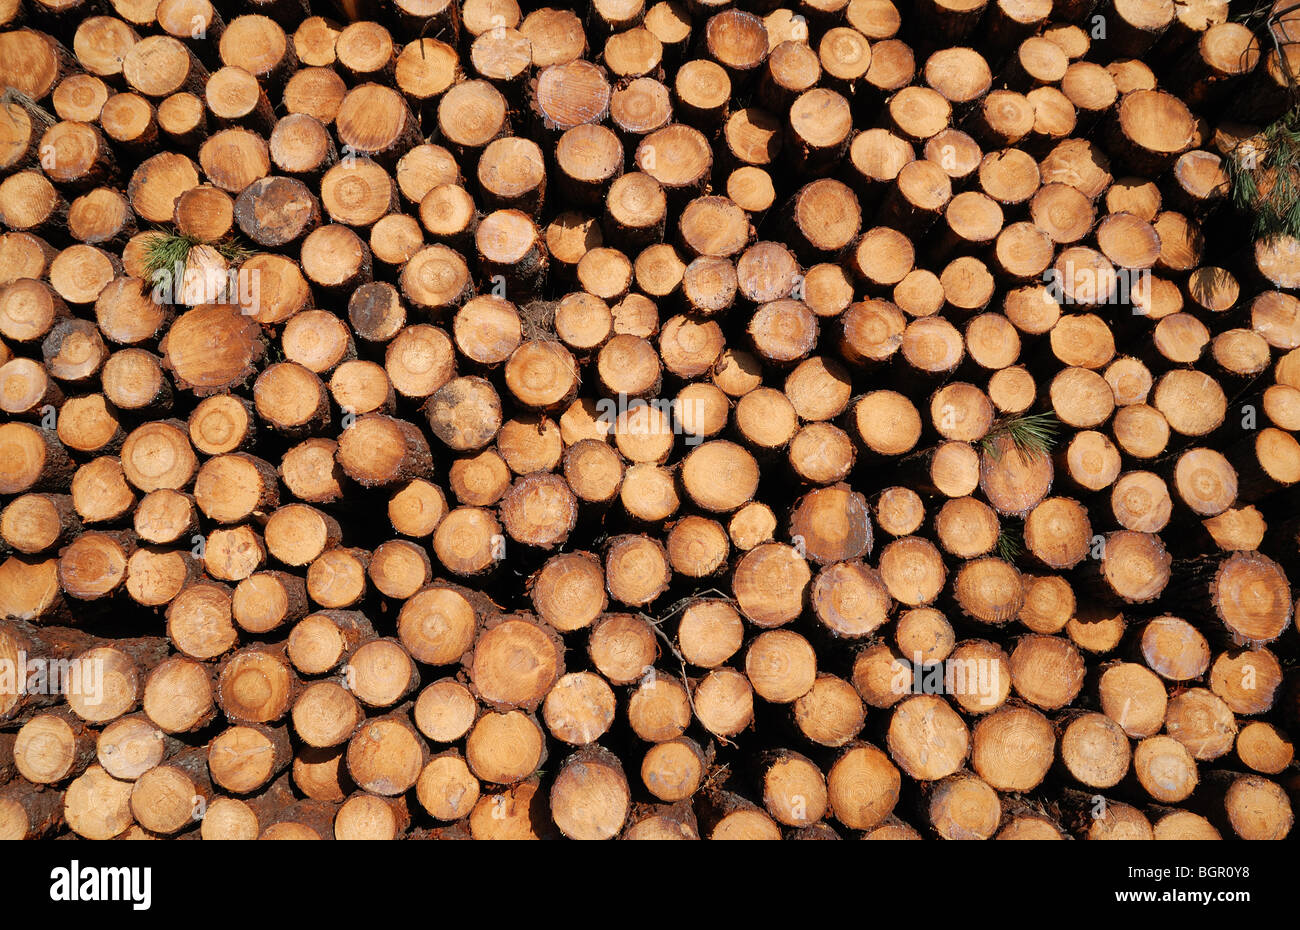 Many cuts of sawed logs form wood stack background. - Stock Image